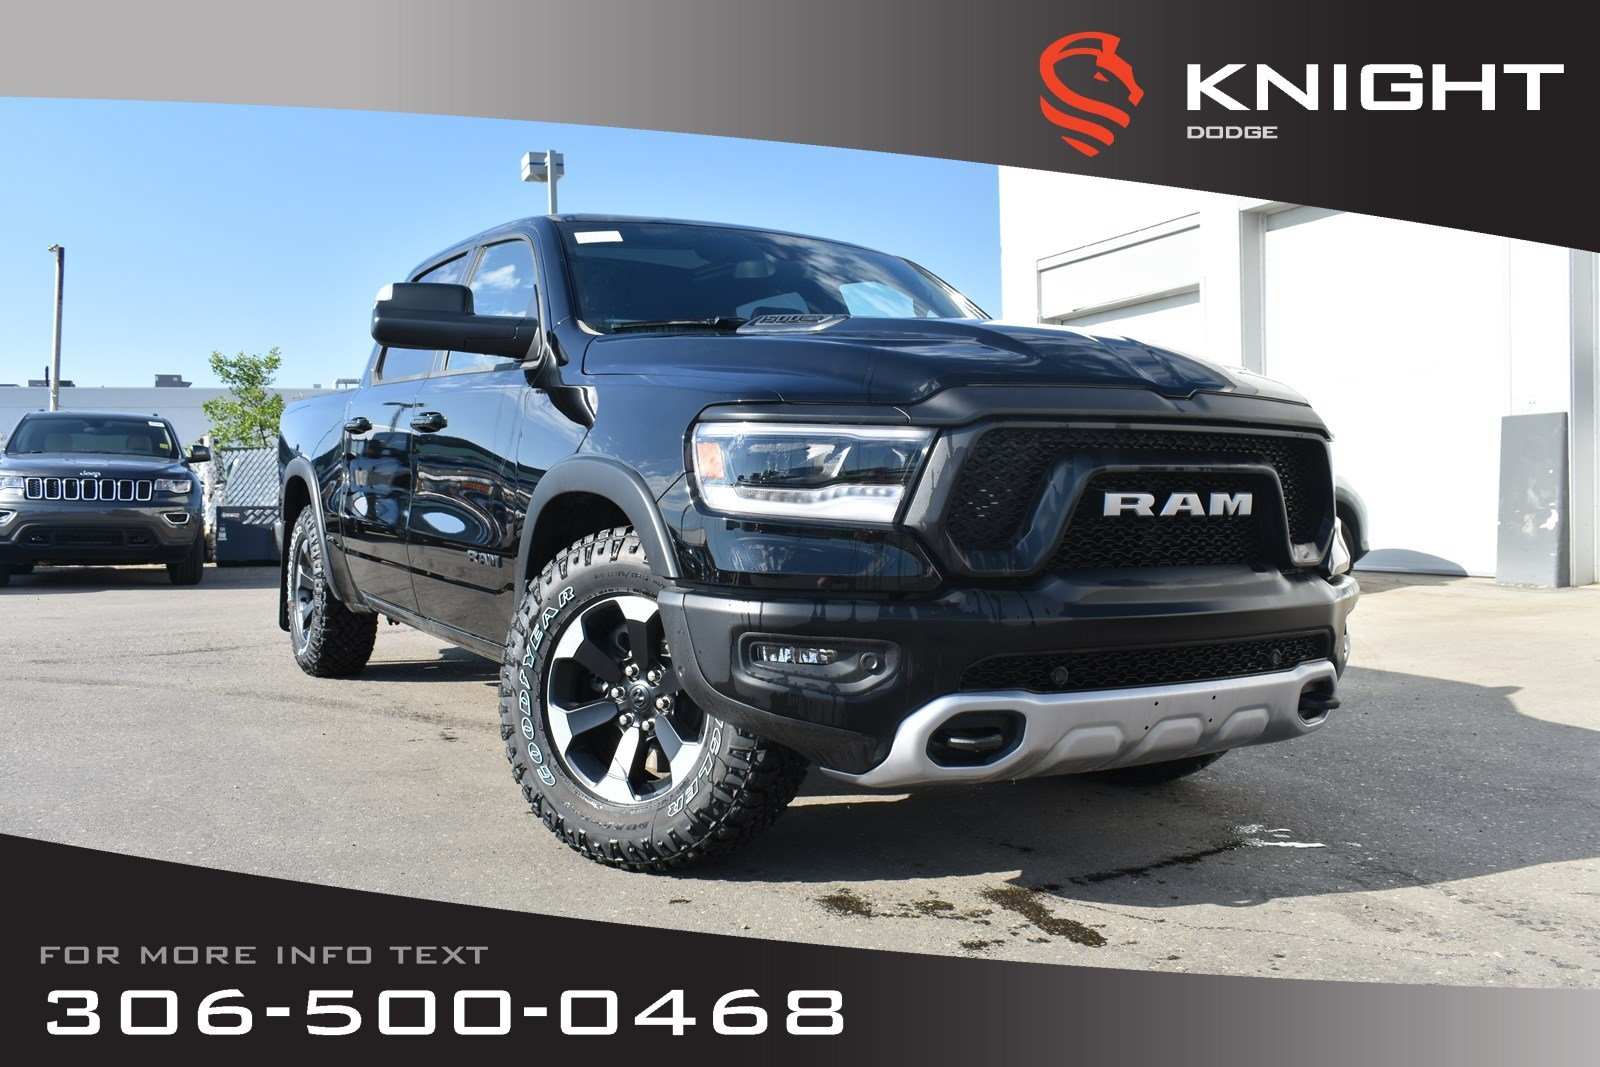 Ram 1500 Rebel >> New 2019 Ram 1500 Rebel Crew Cab Heated Seats And Steering Wheel Sunroof Navigation 4wd Crew Cab Pickup